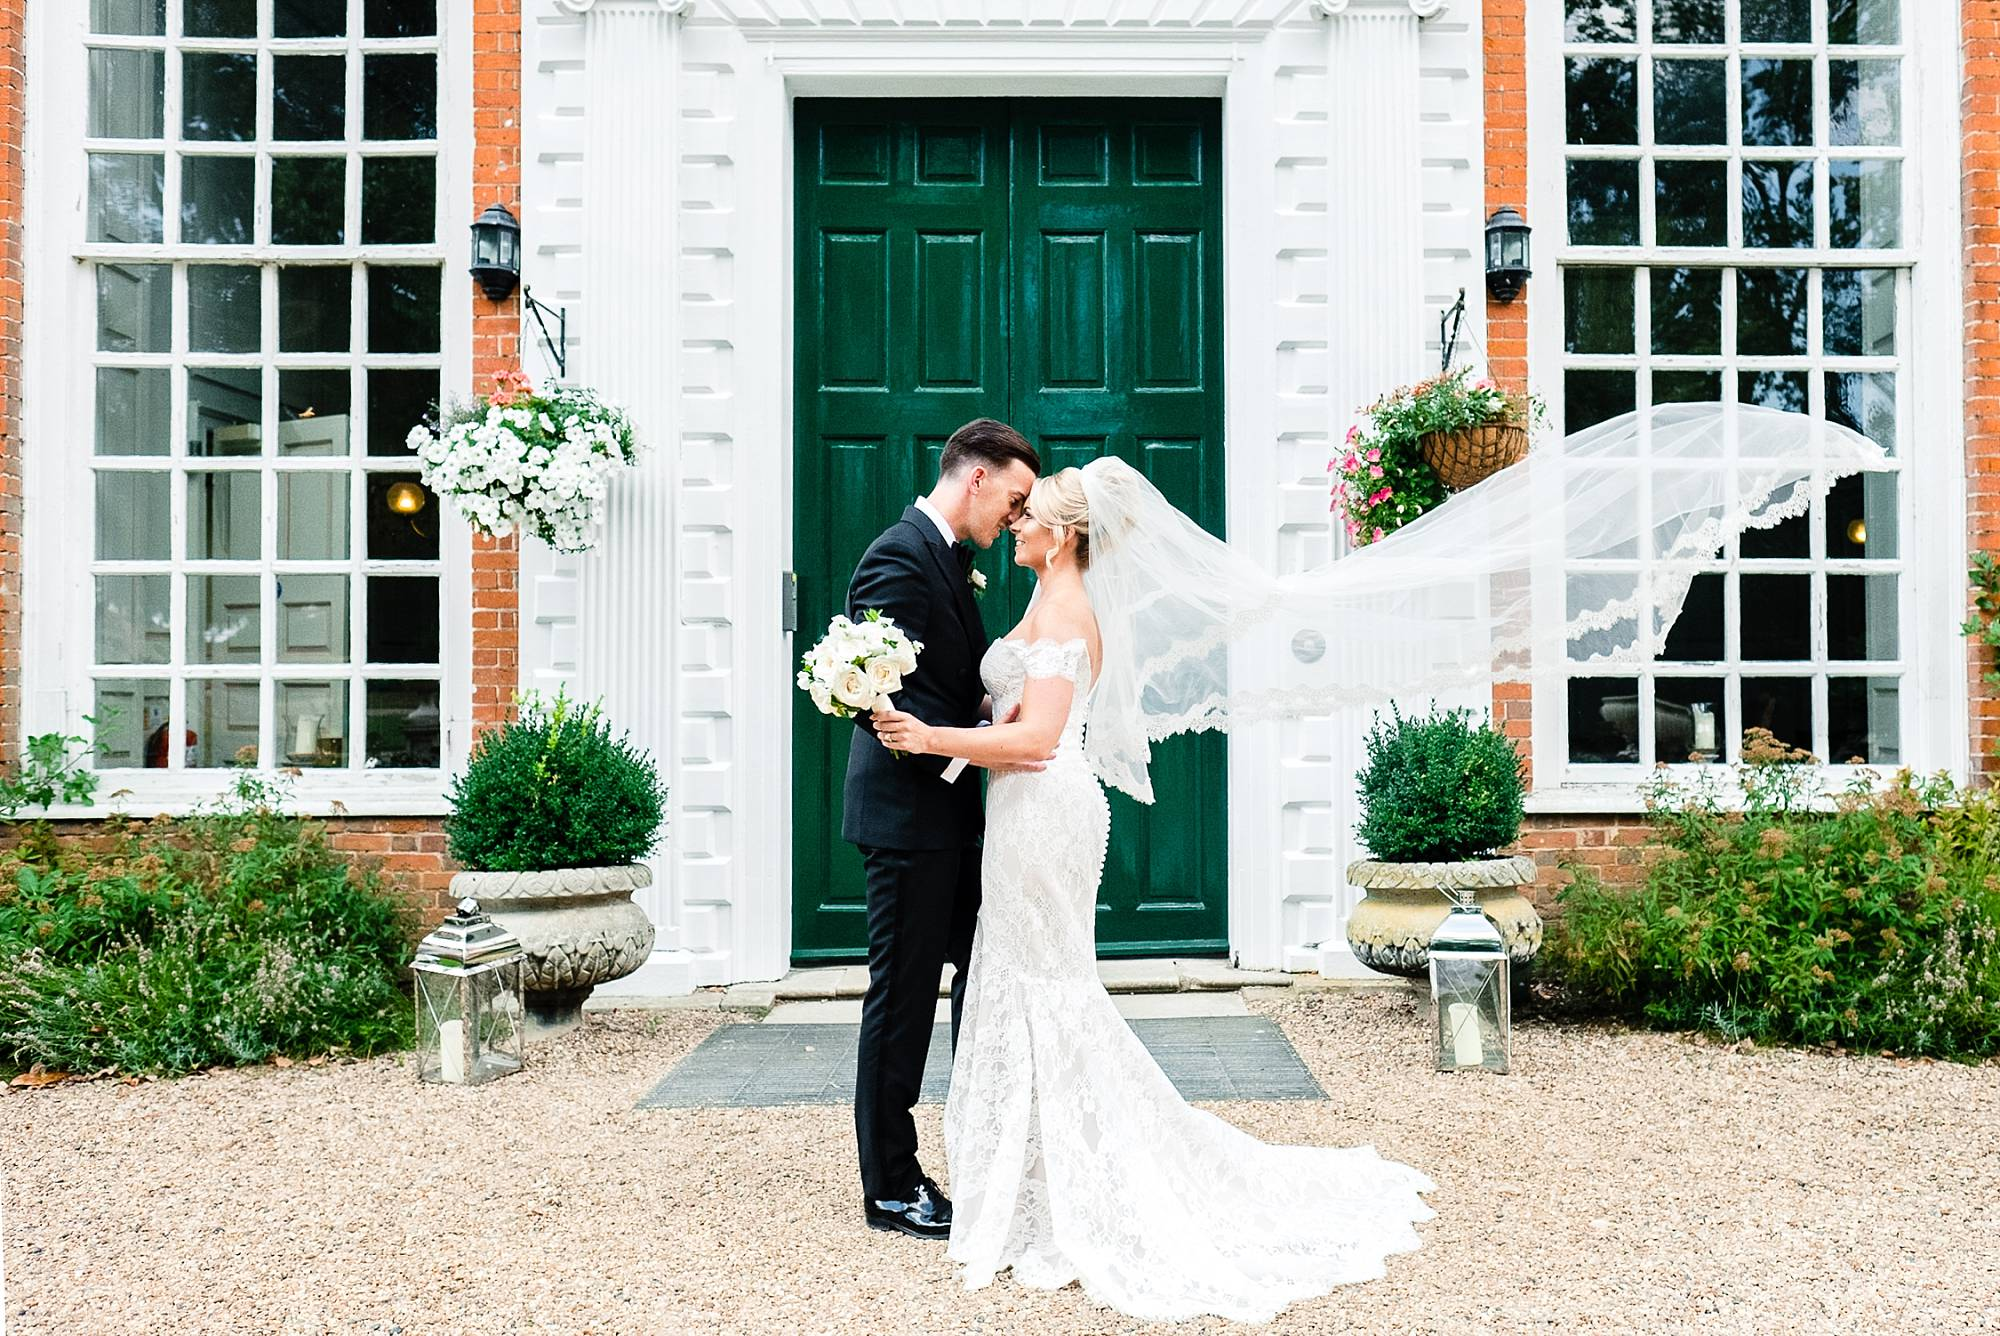 Gosfield Hall Essex Wedding Photographer_0105.jpg